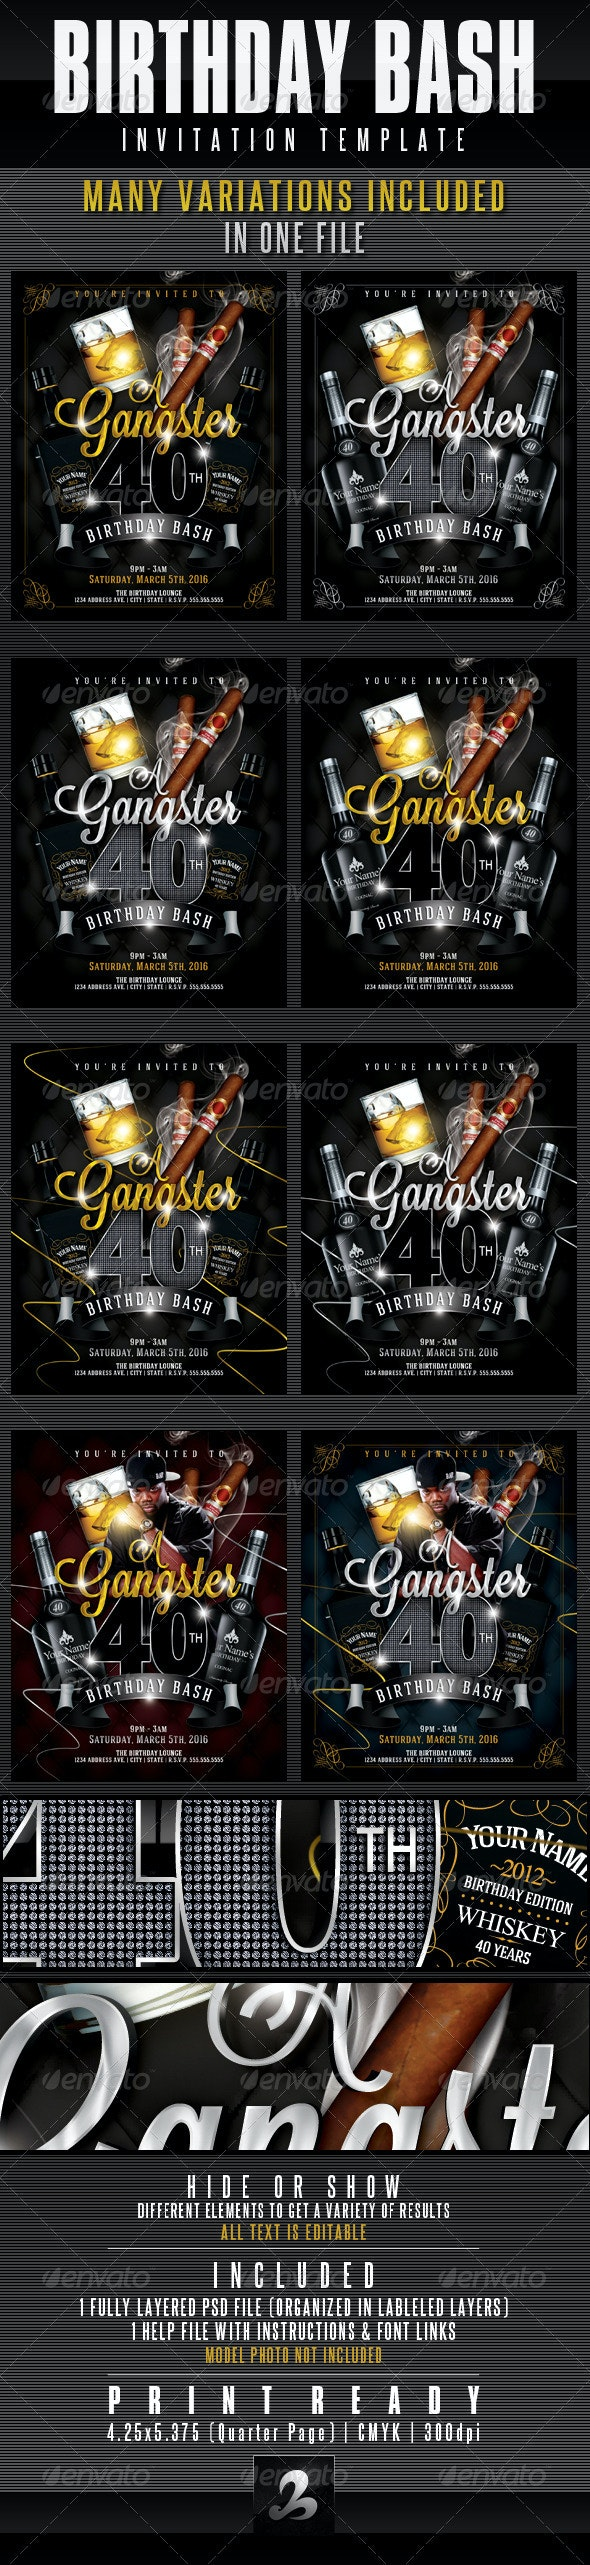 Birthday Invitation Template - Gangster Style Pt.1 - Invitations Cards & Invites